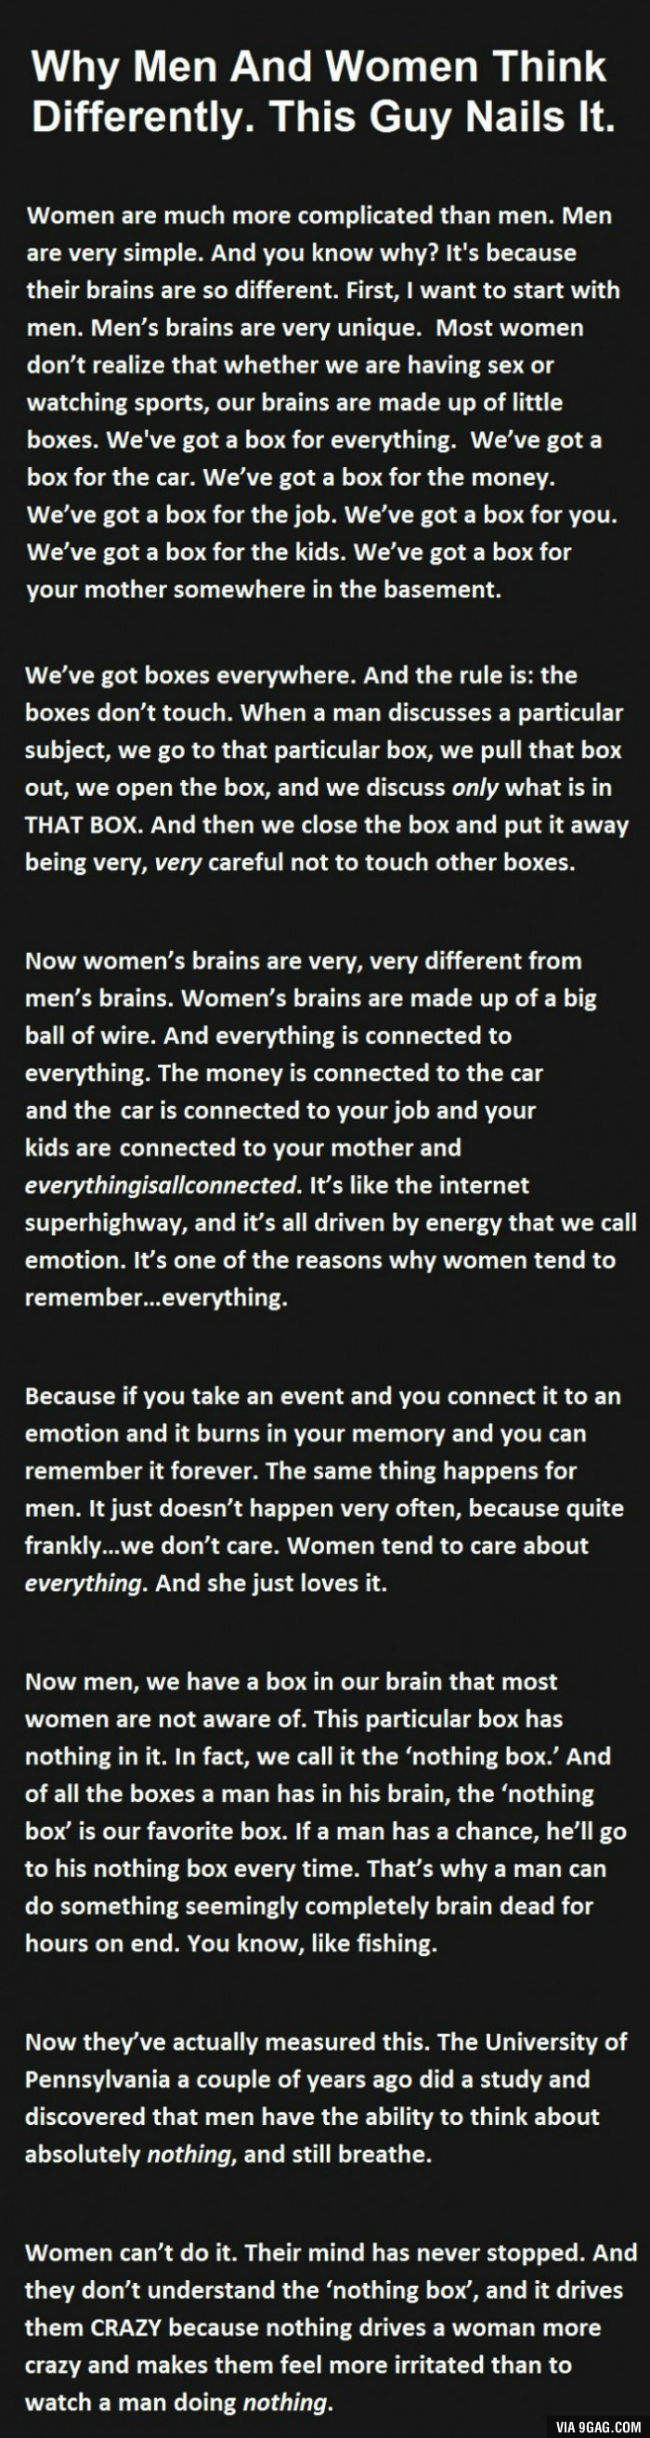 why-men-and-women-things-differently.jpg (650×2438)